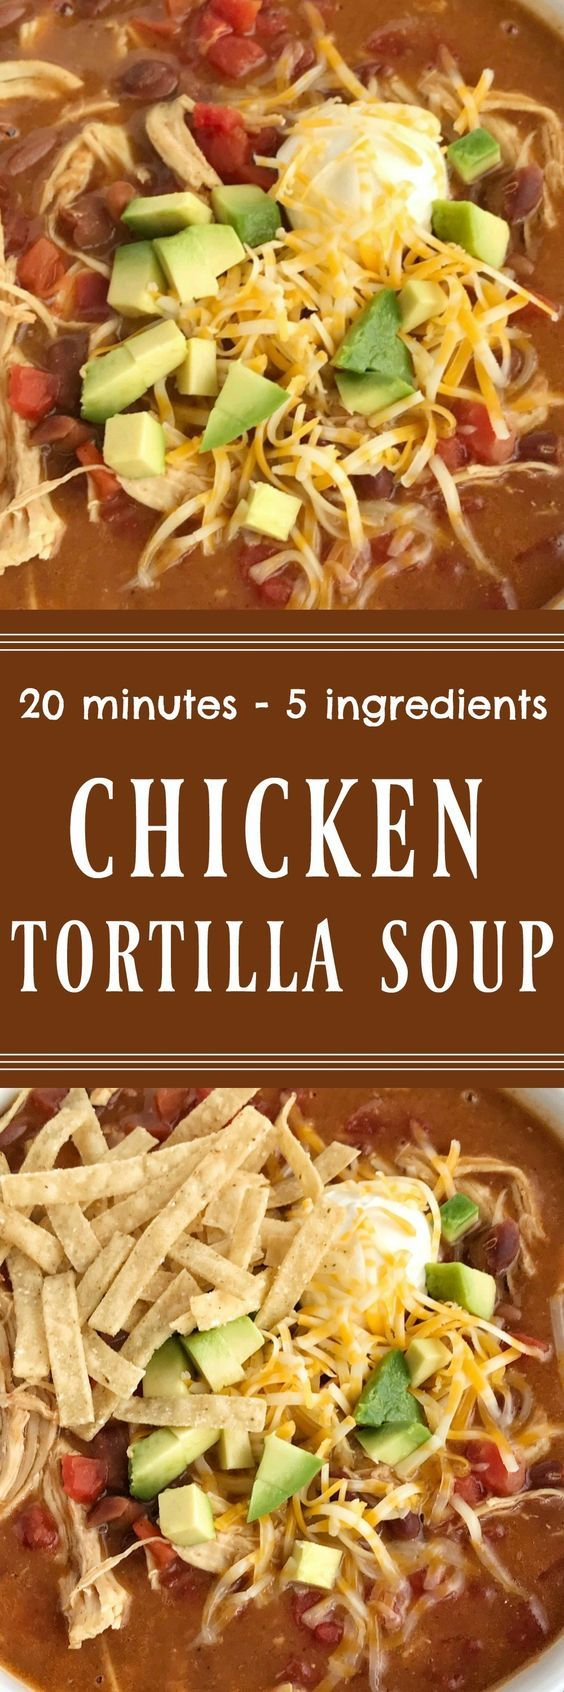 Chicken Tortilla Soup Recipe | The best 5 ingredient chicken tortilla soup only takes 20 minutes to make! One pot is all you need for this delicious and creamy tortilla soup. Combine 5 ingredients some spices and let it simmer on the stove top. Top with cheese, avocado, chips, and sour cream.